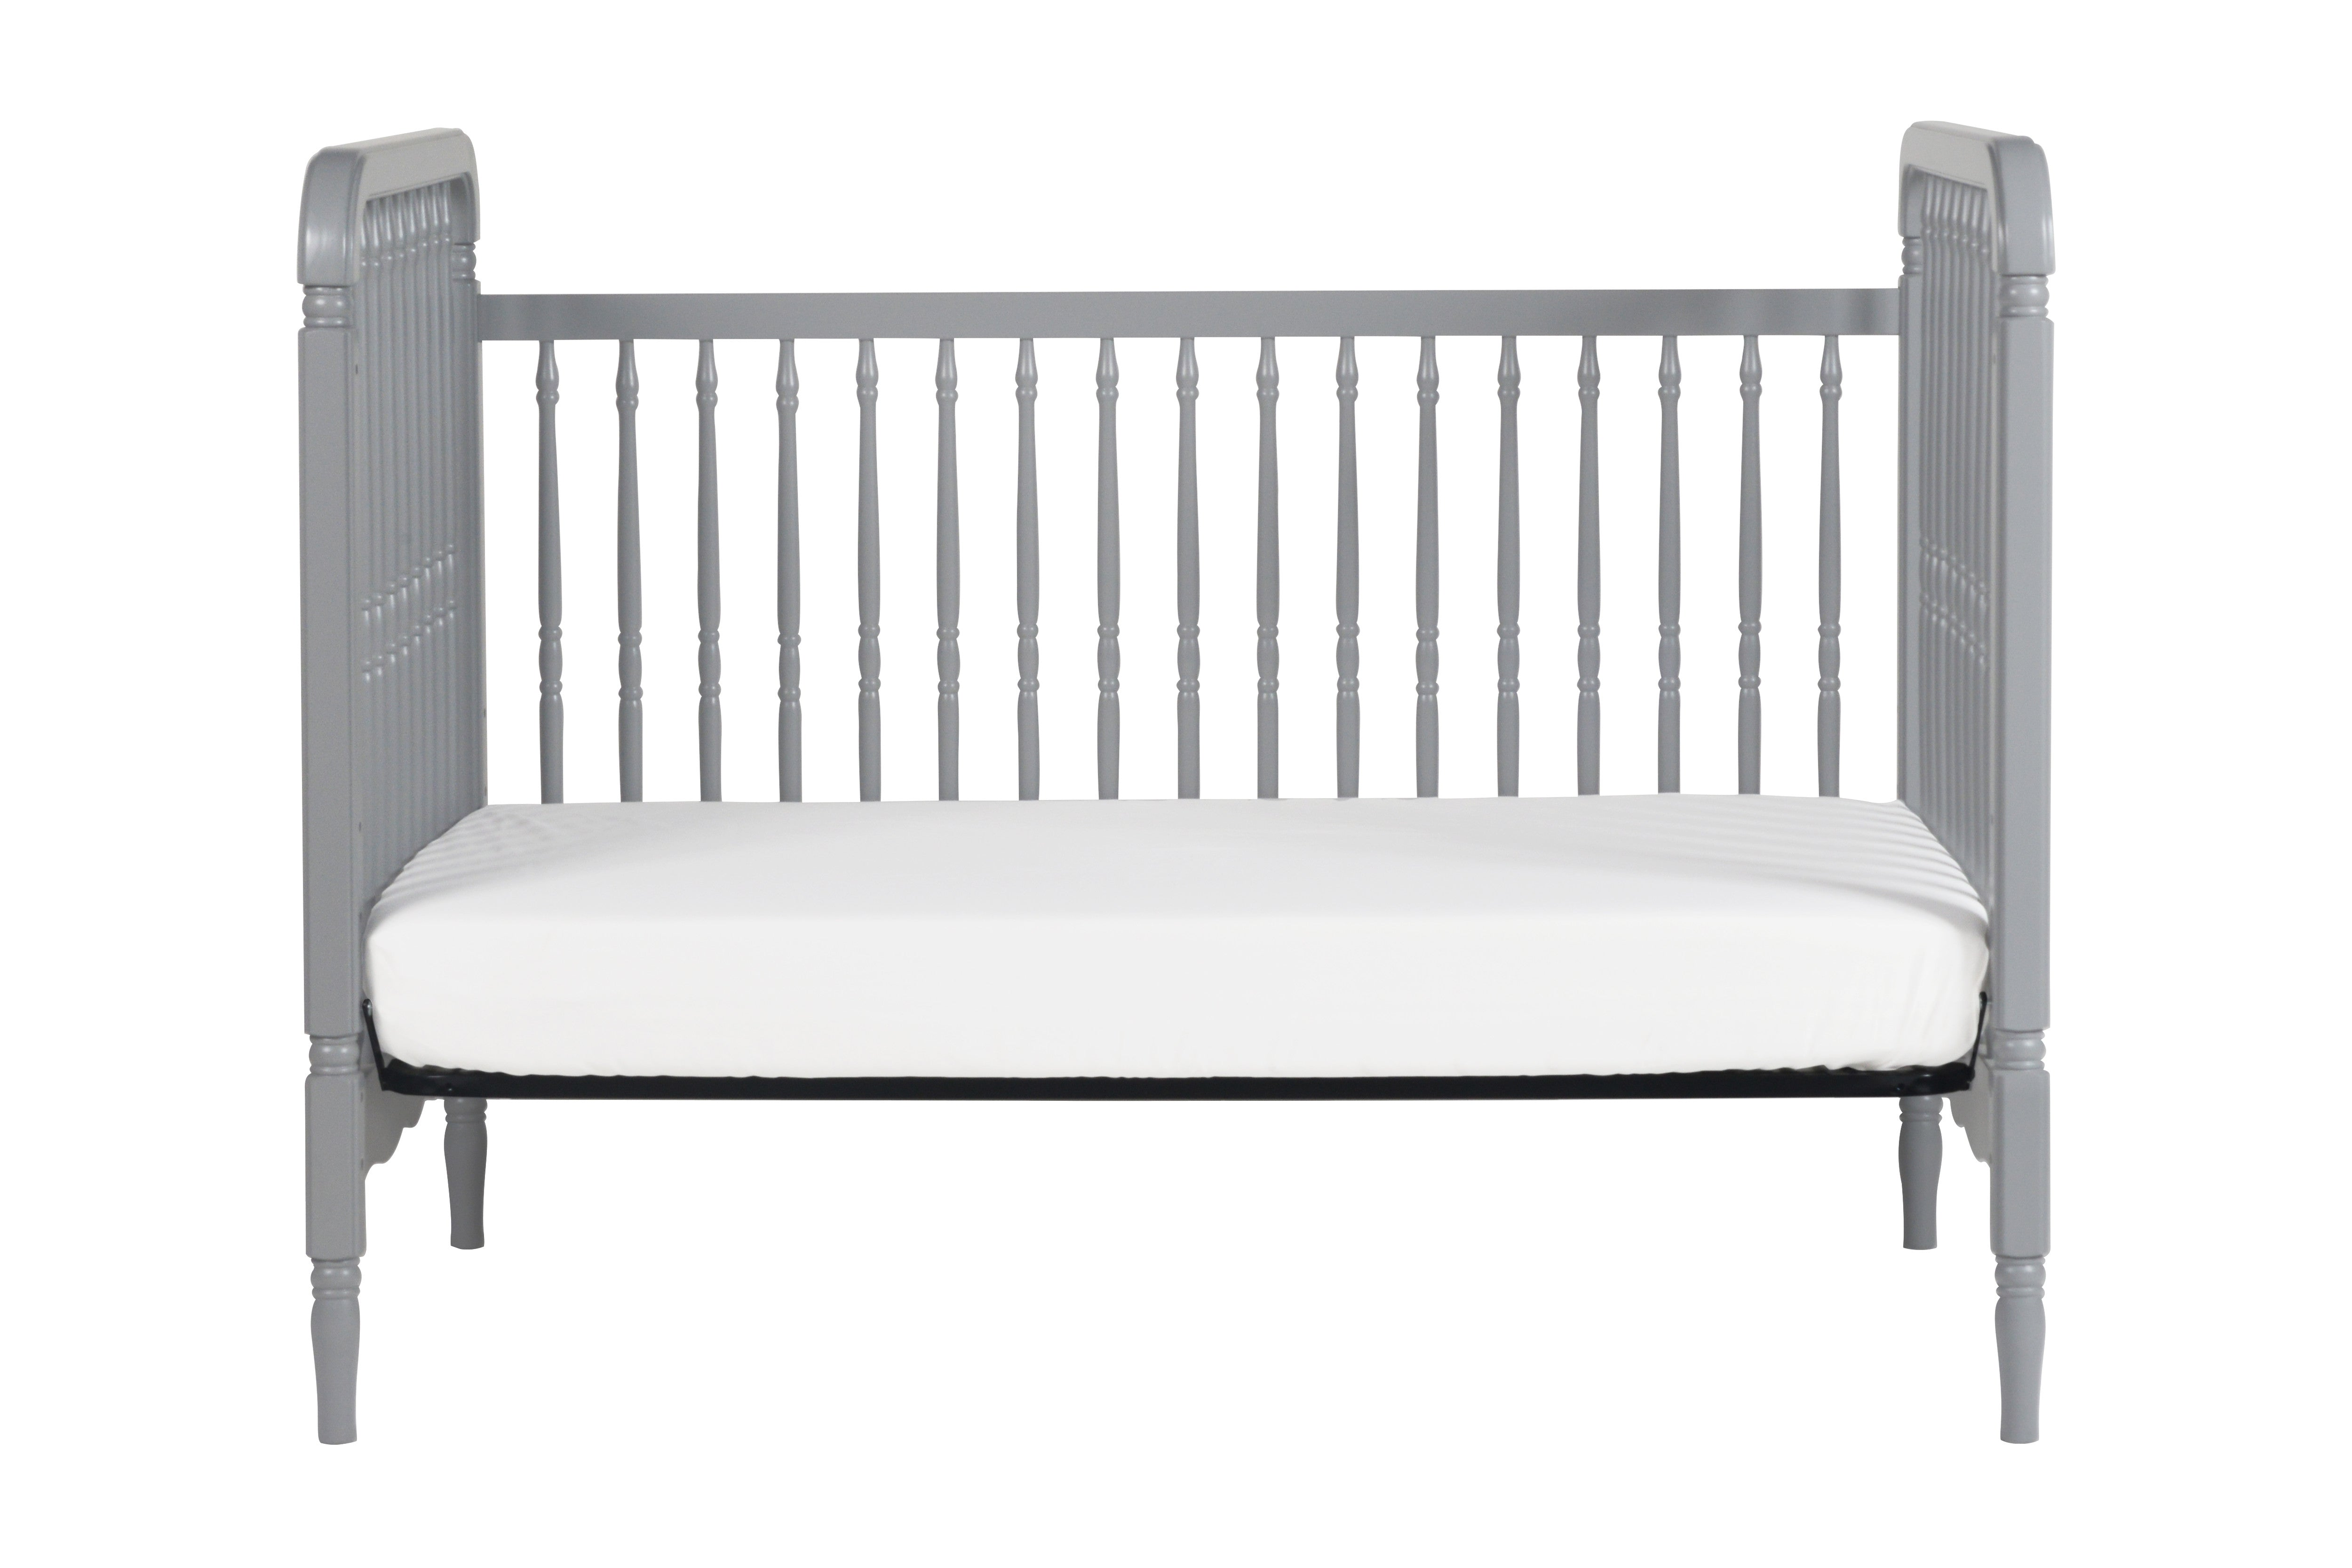 M7101G,Liberty 3-in-1 Convertible Crib With Toddler Bed Conversion Kit in Grey